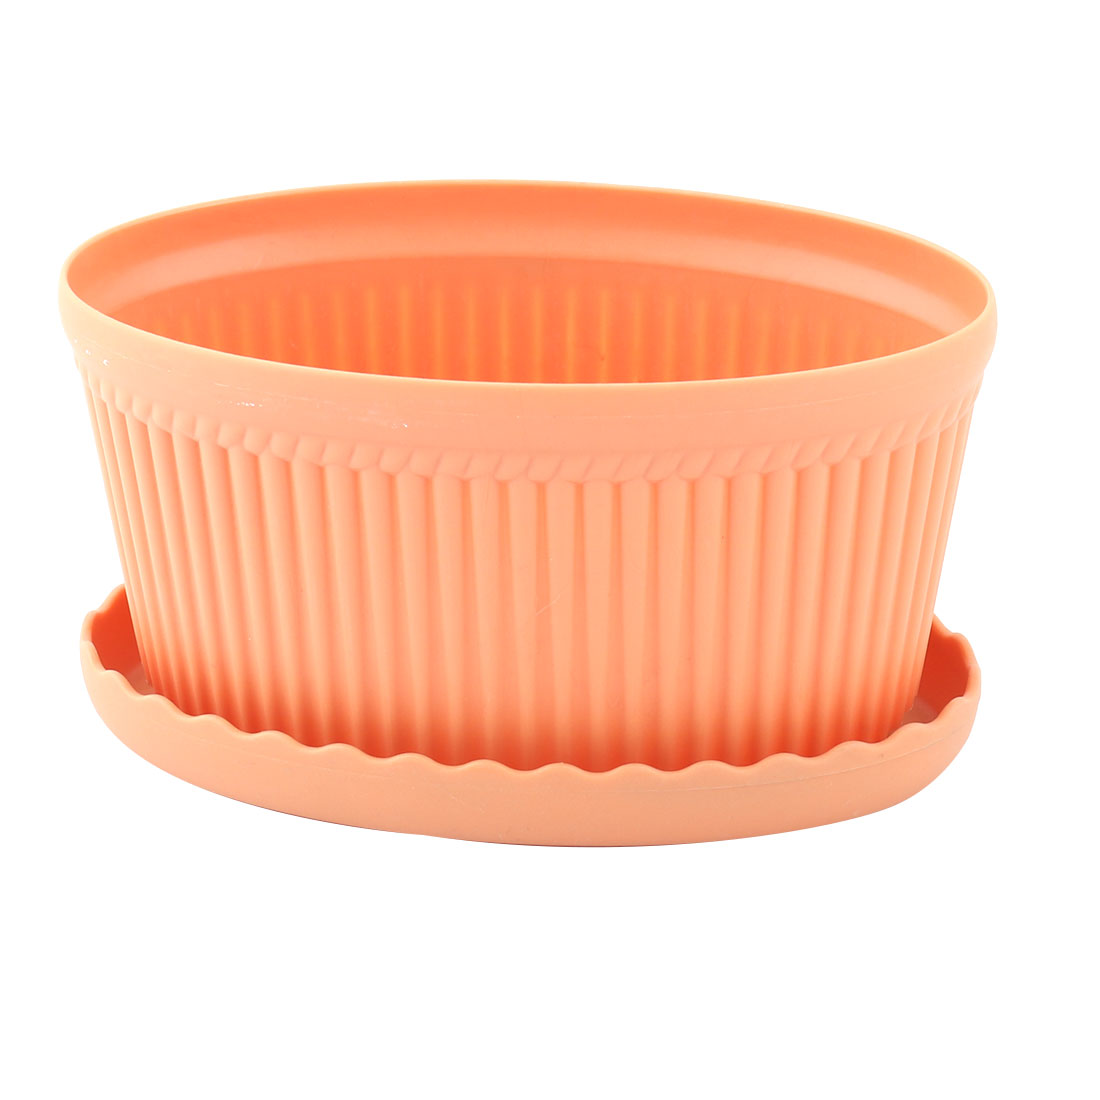 Home Ornament Plastic Oval Flower Cactus Plant Pot Tray Holder Container Orange